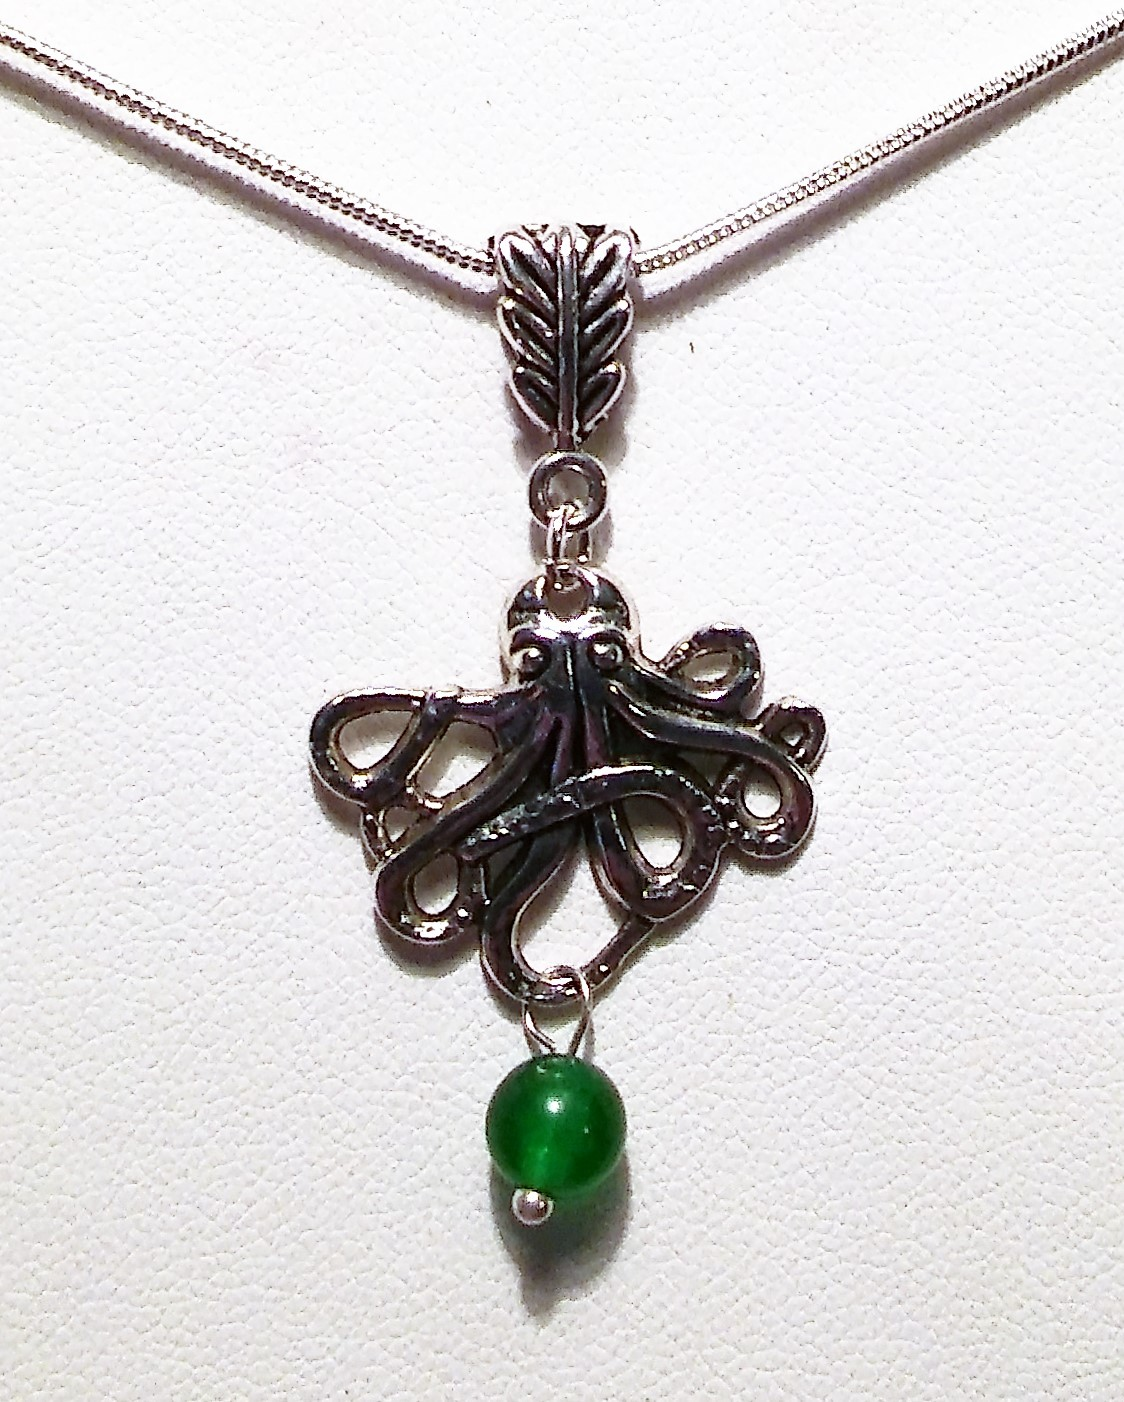 Octopus Pendant Necklace With Jade Bead